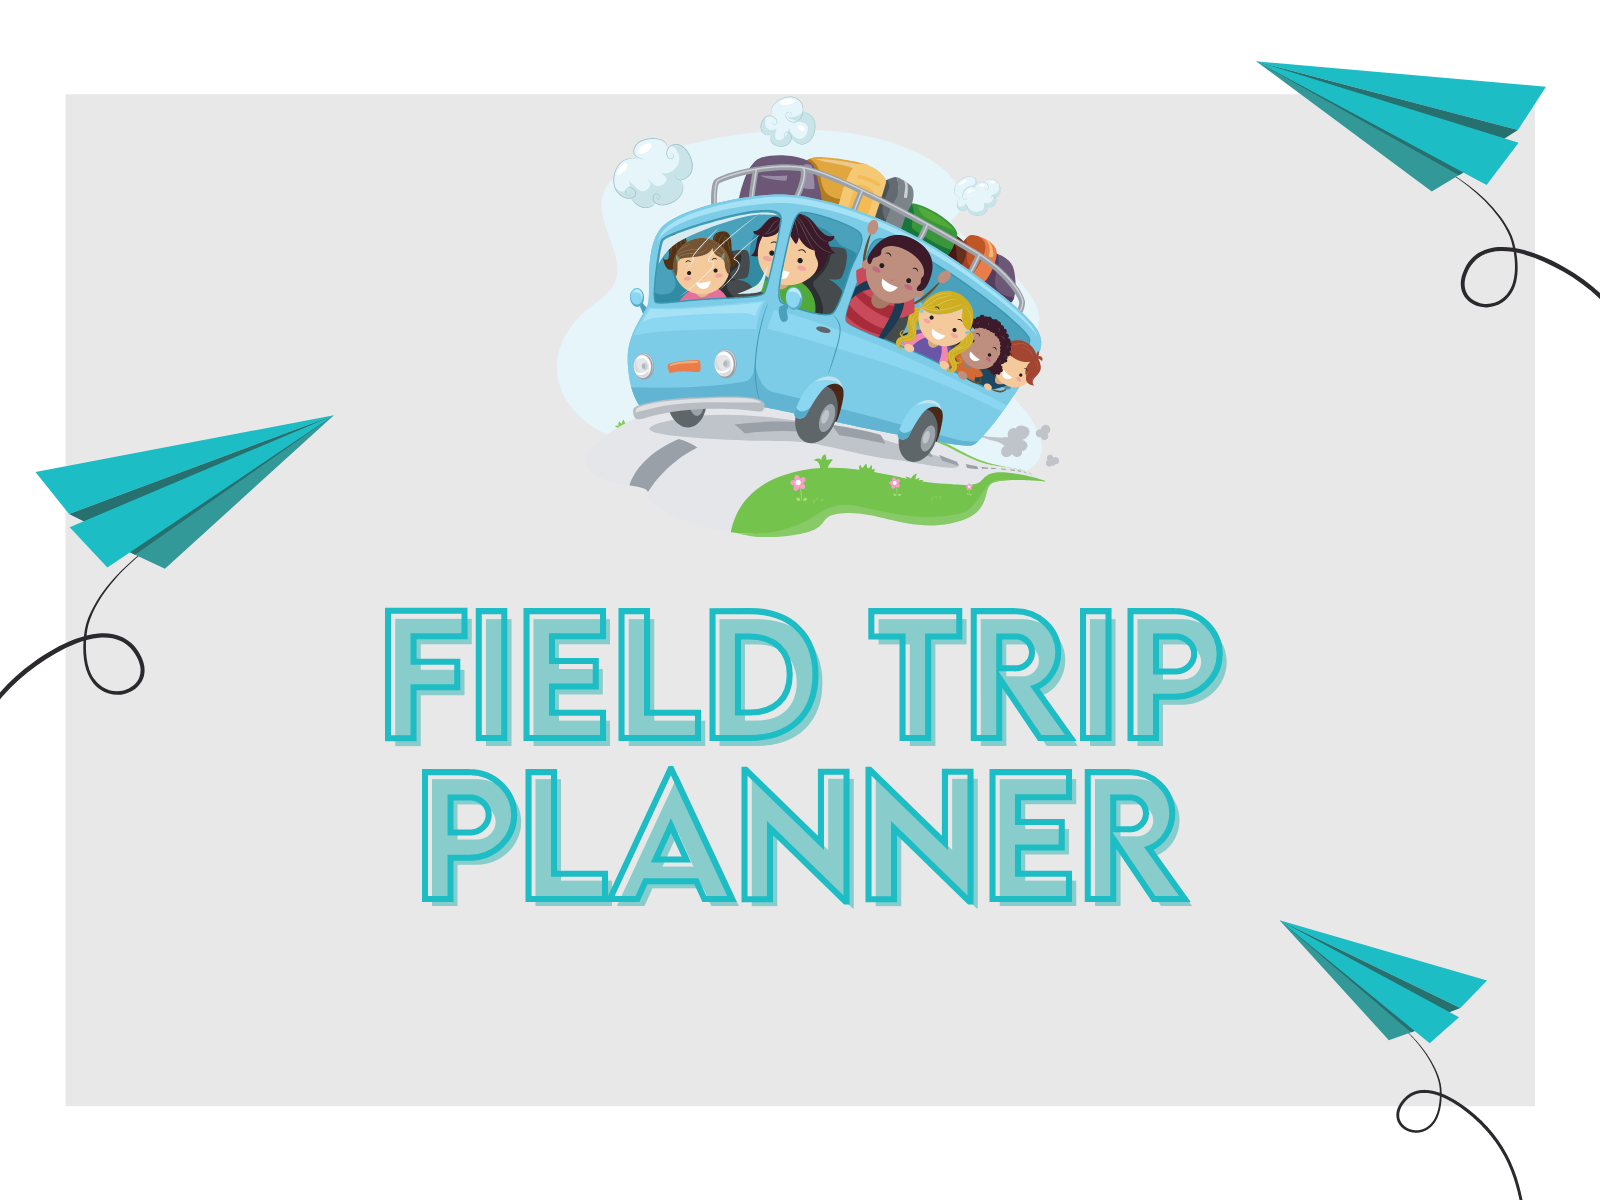 Free downloadable field trip planner for teachers, camp counselors, and more.